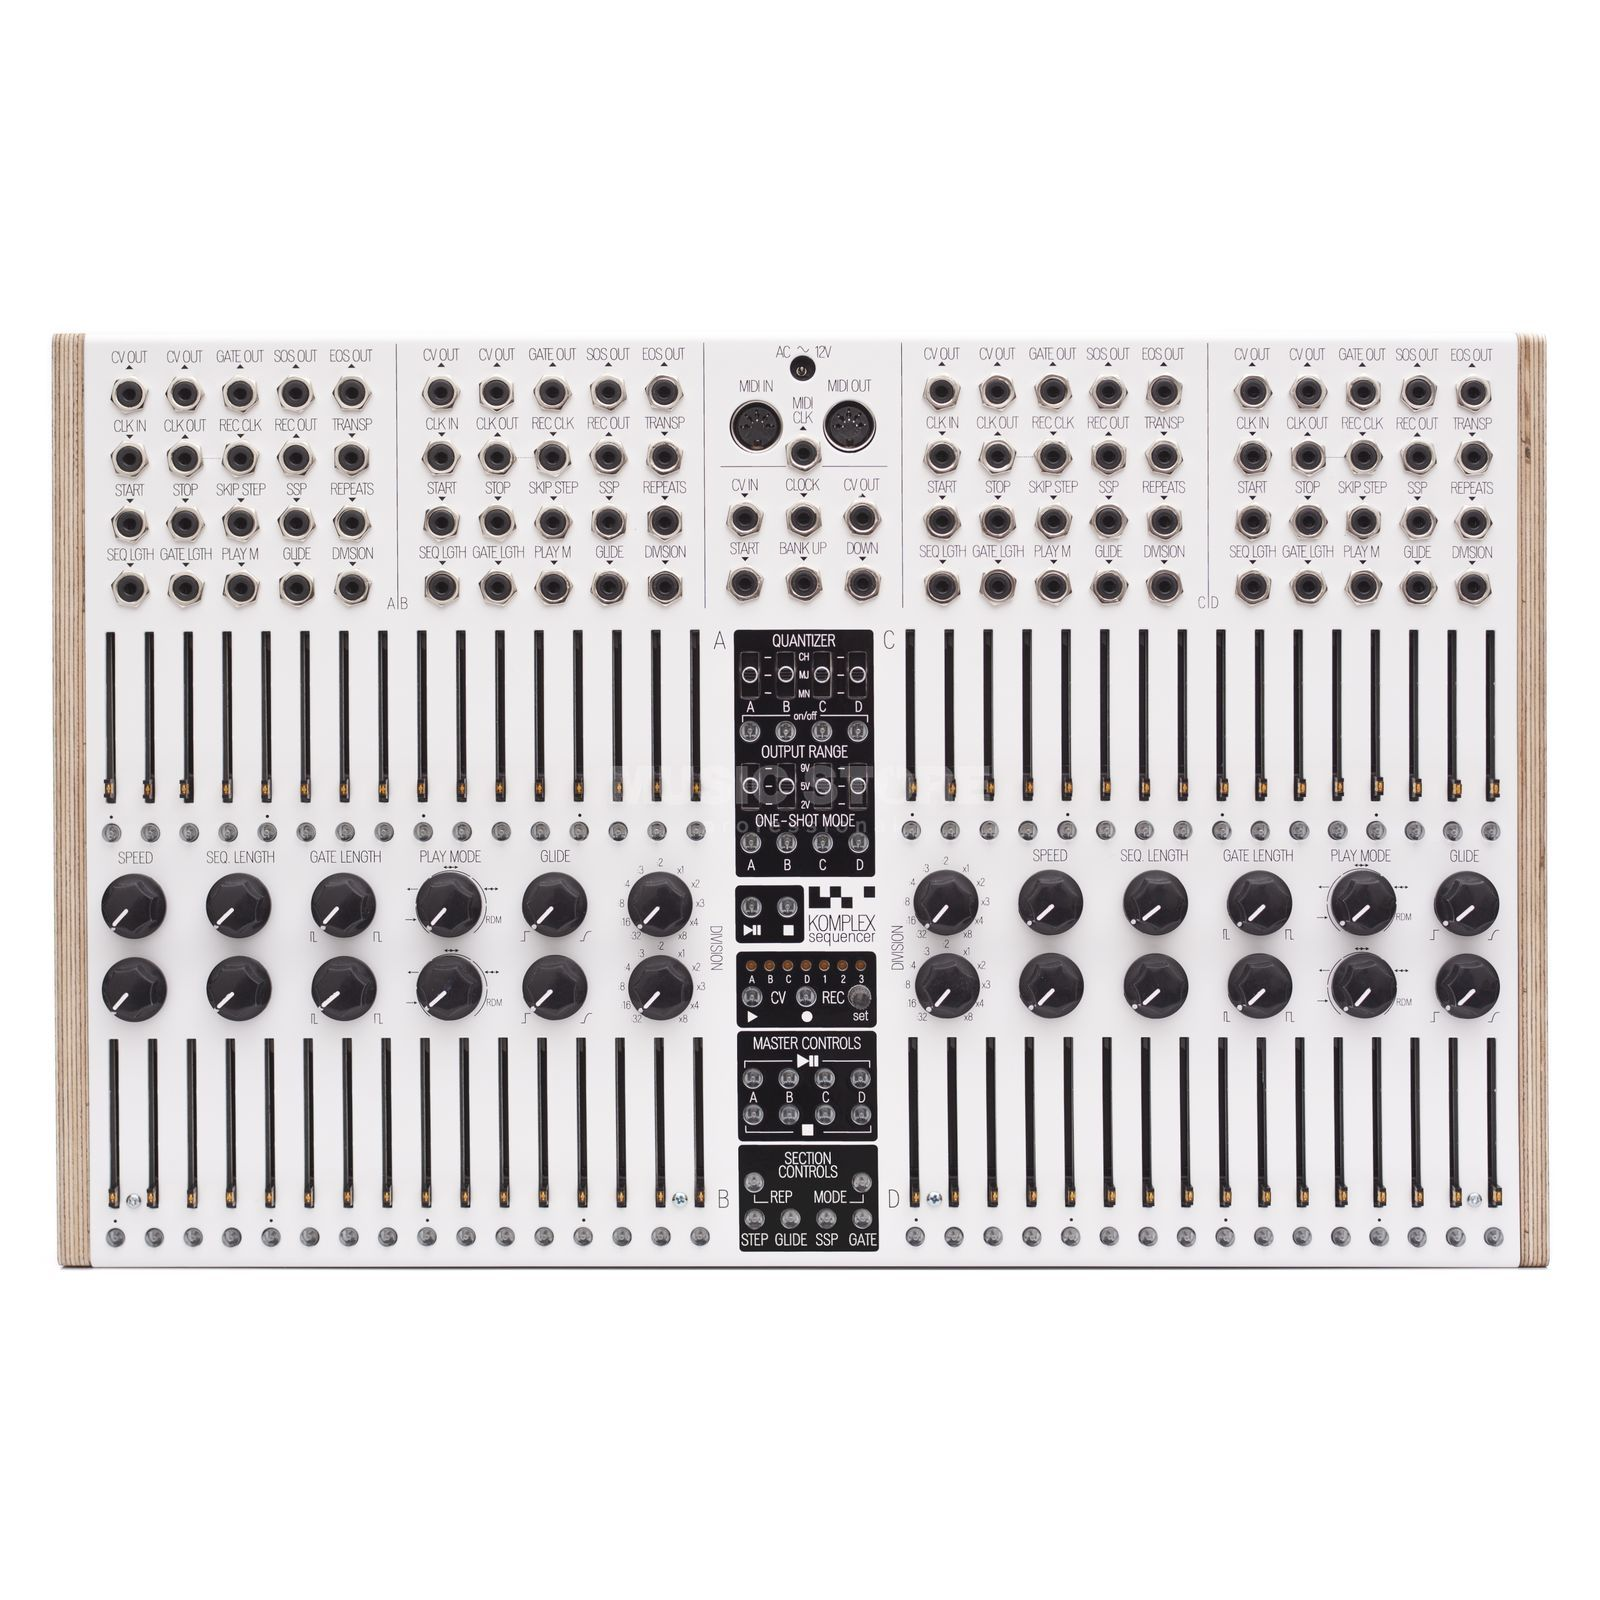 Koma Elektronik KOMPLEX SEQUENCER Product Image